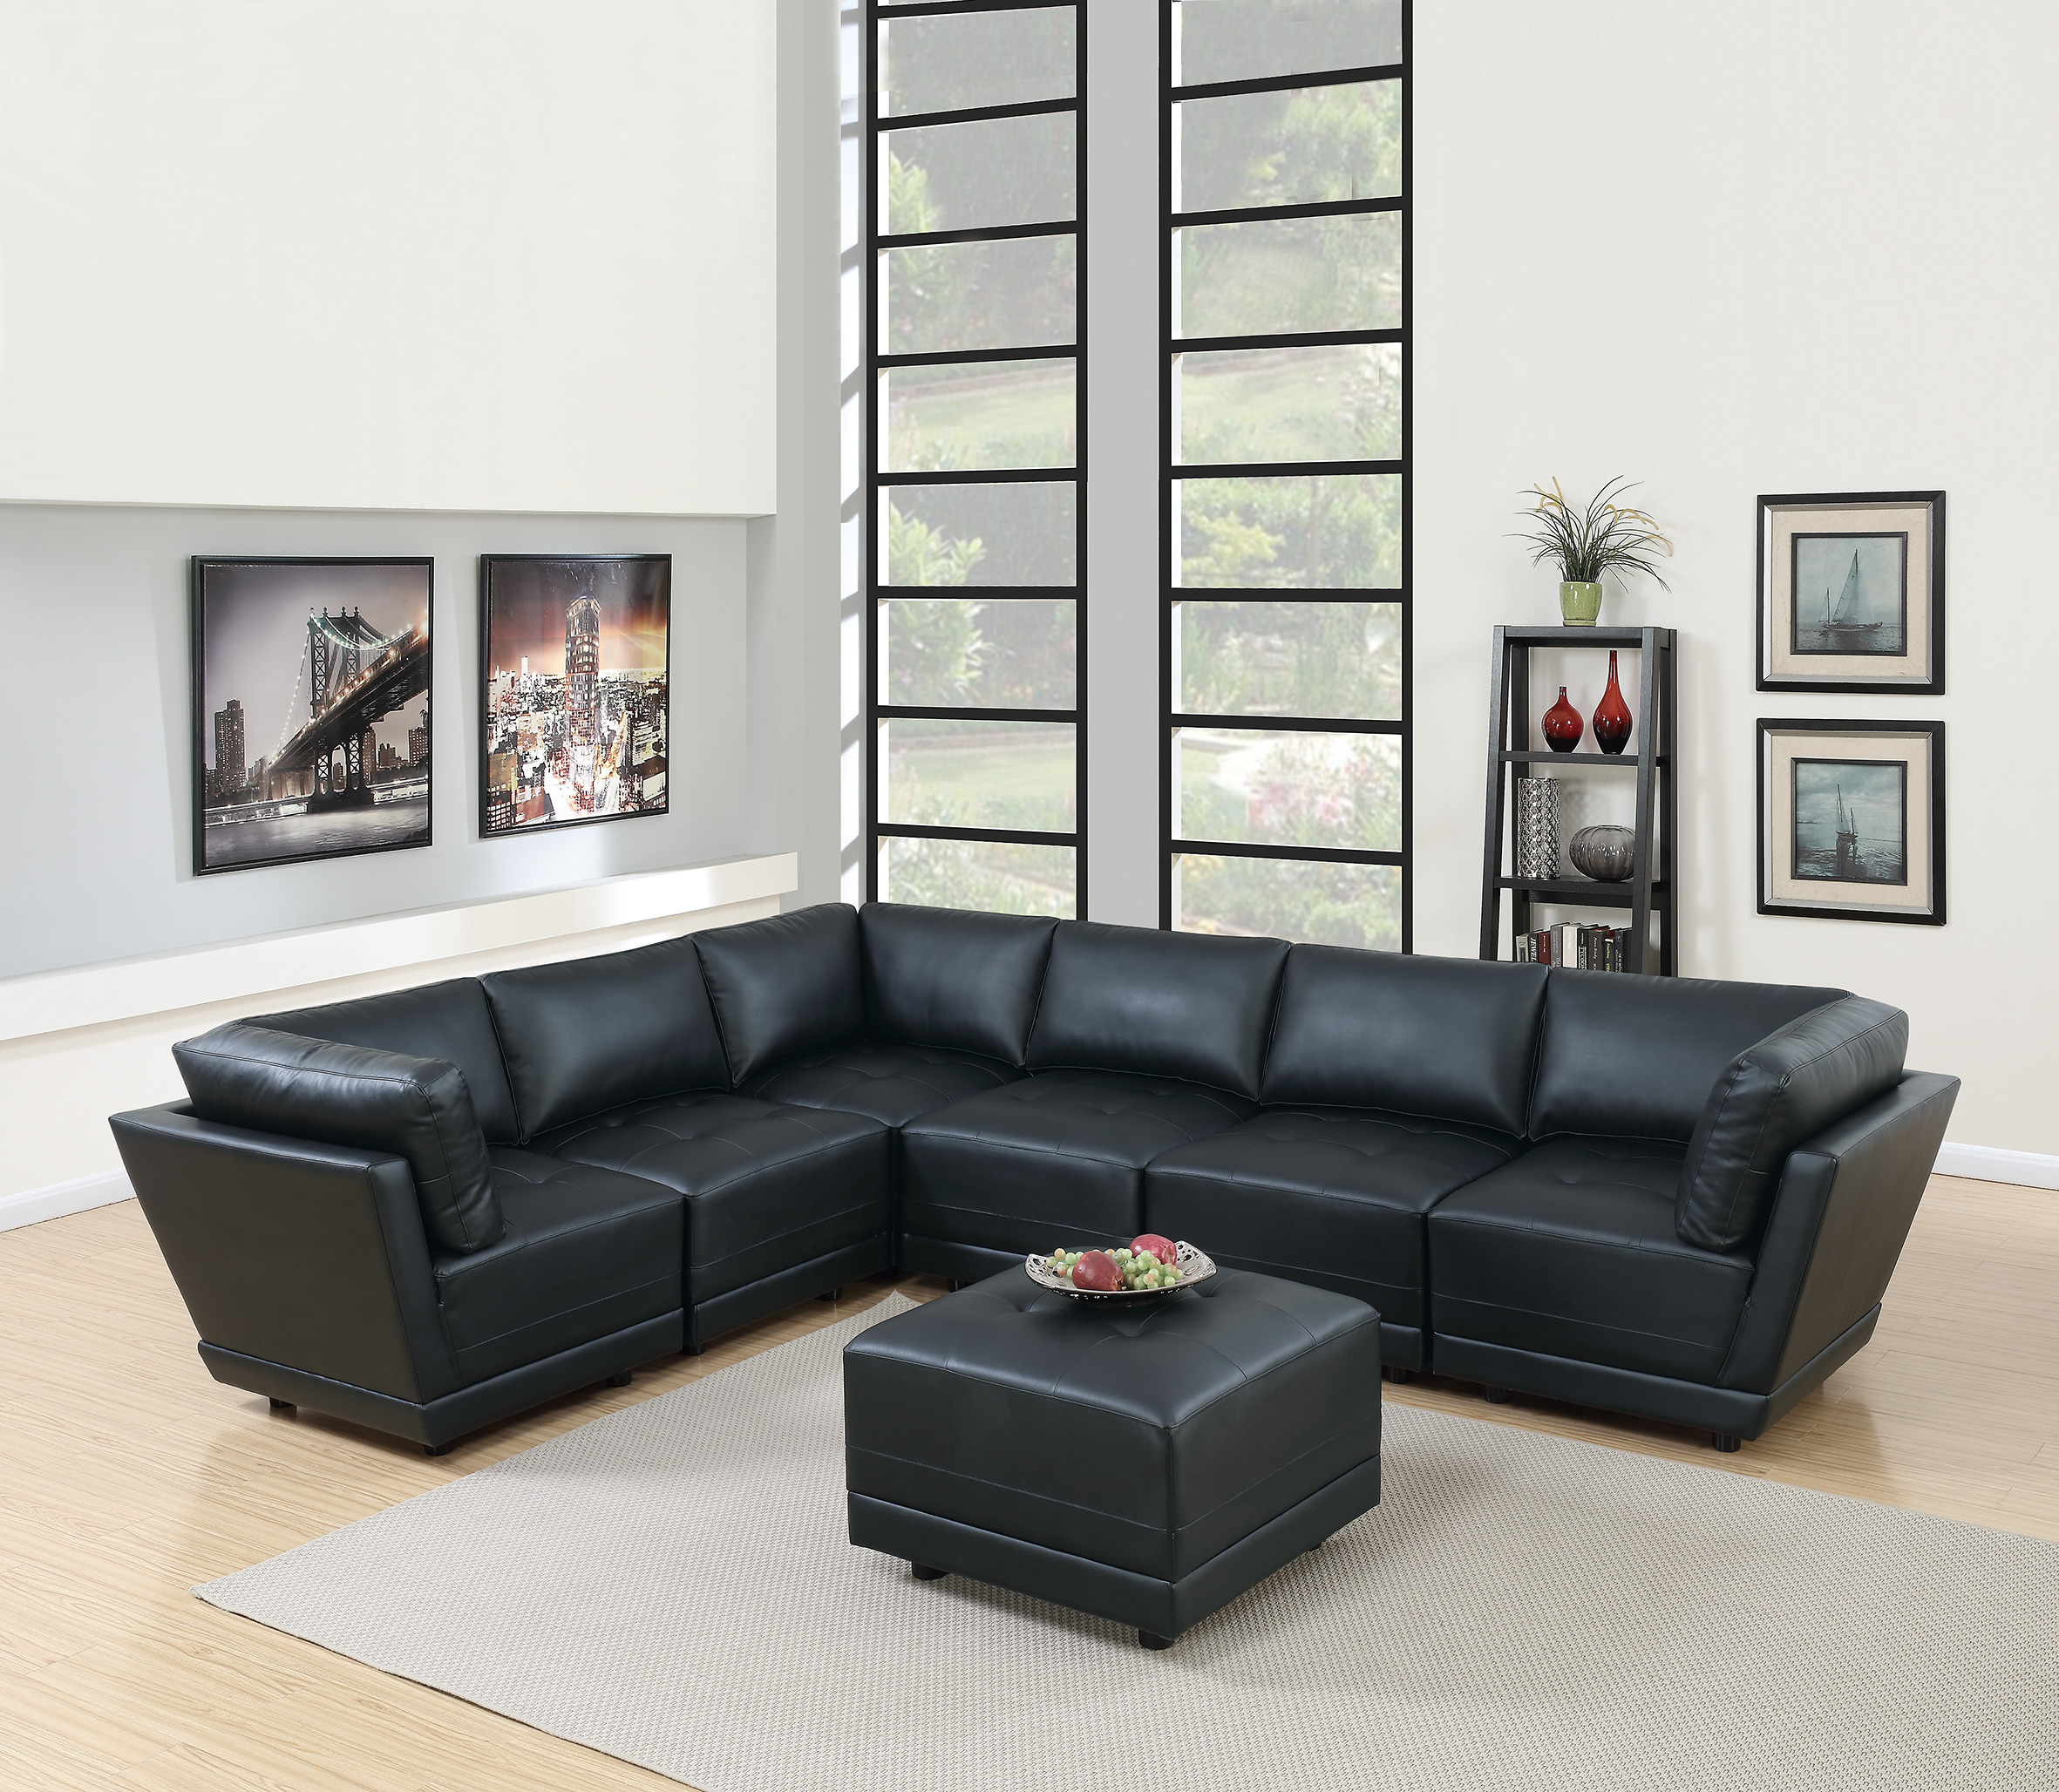 Modern Modular Sectional Sofa 7pc Set Black Bonded Leather 3 Corner Sofa 3  Armless Chairs and Ottoman Living Room